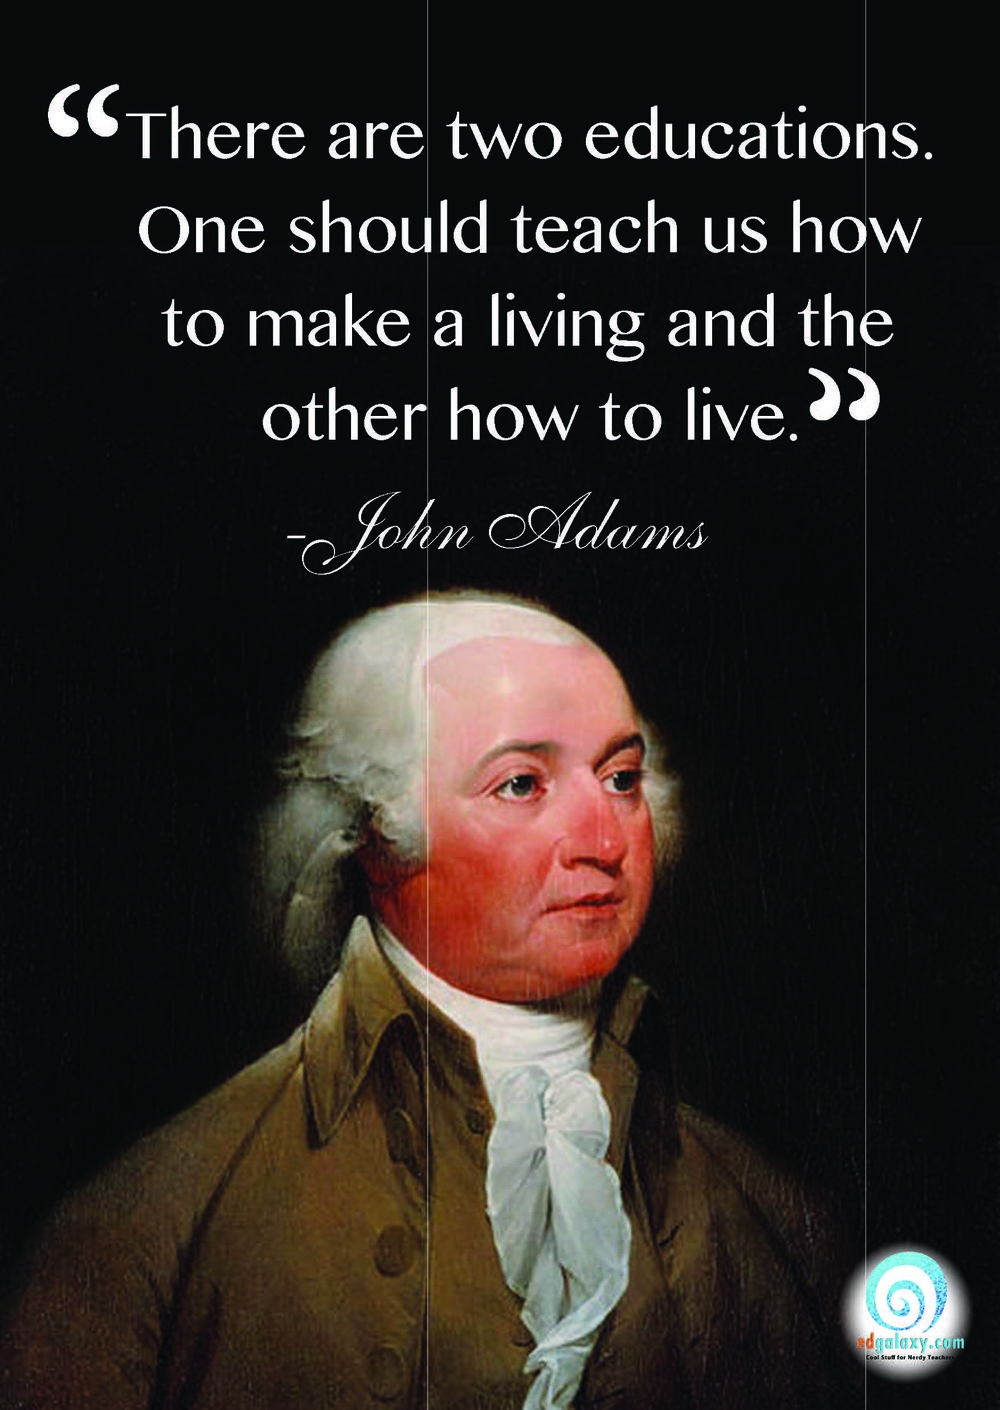 Great Quotes For Students: Famous People Quotes On Art Education. QuotesGram